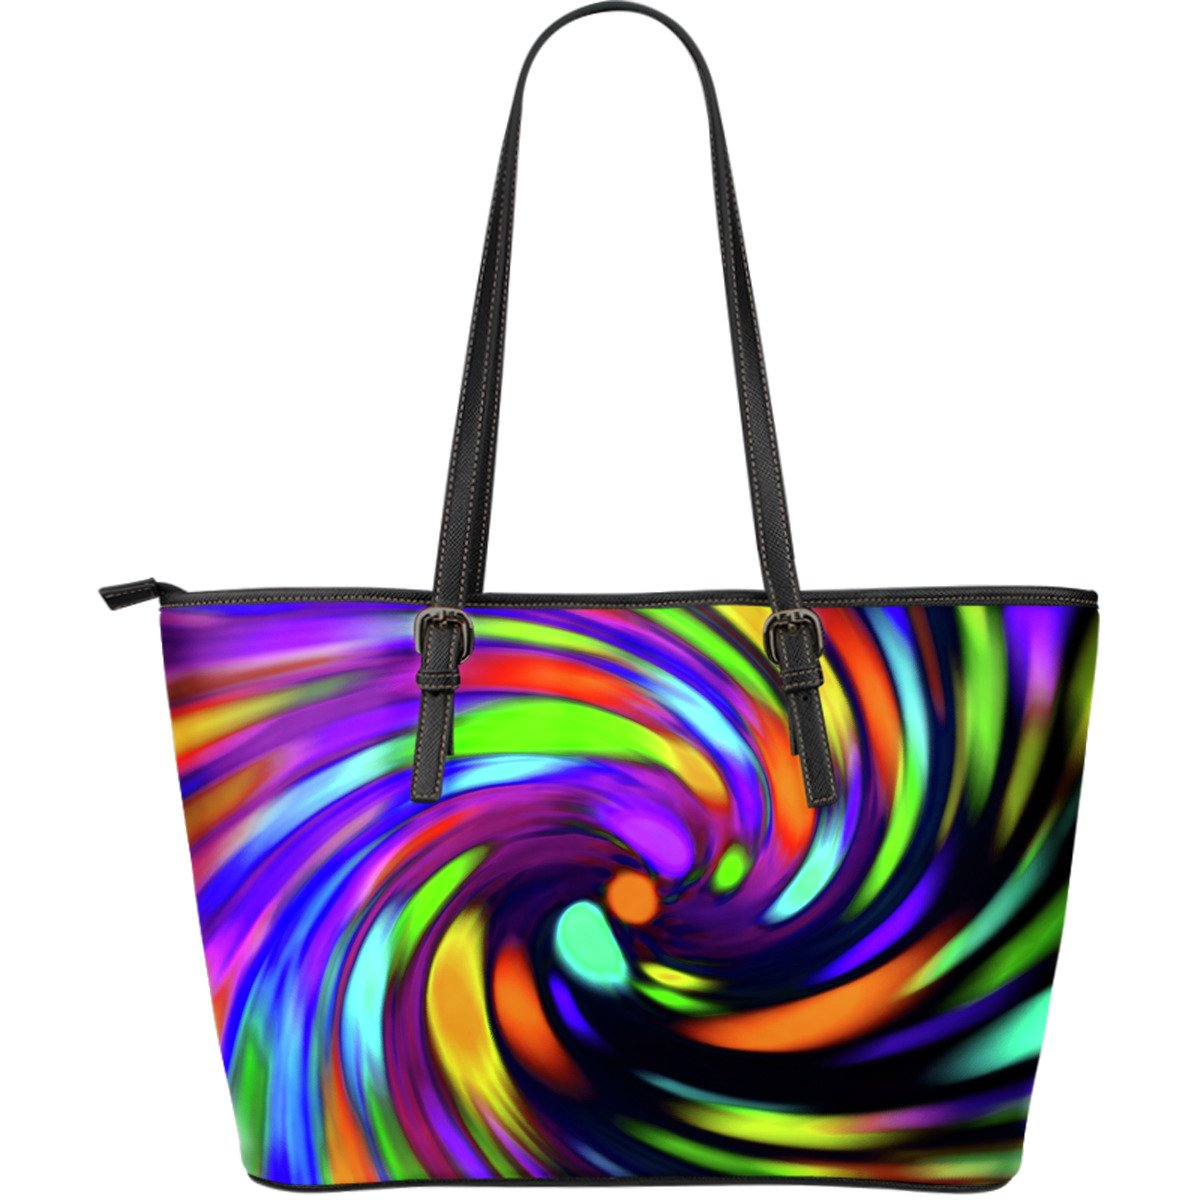 Colorful Spiral Trippy Print Leather Tote Bag GearFrost